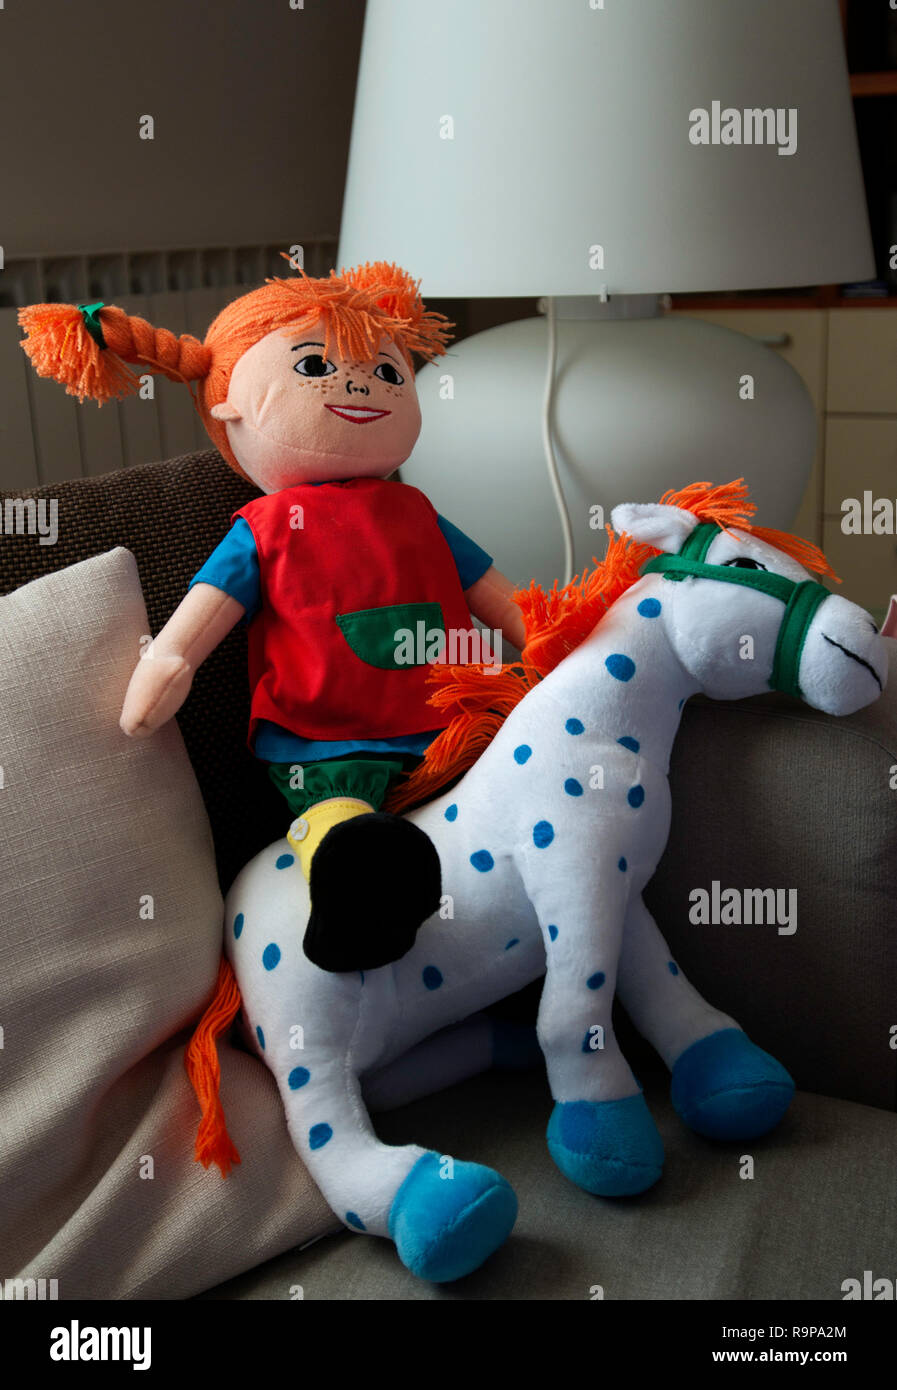 Pippi Longstocking (pippi Calzelunghe) doll on a sofa - Stock Image